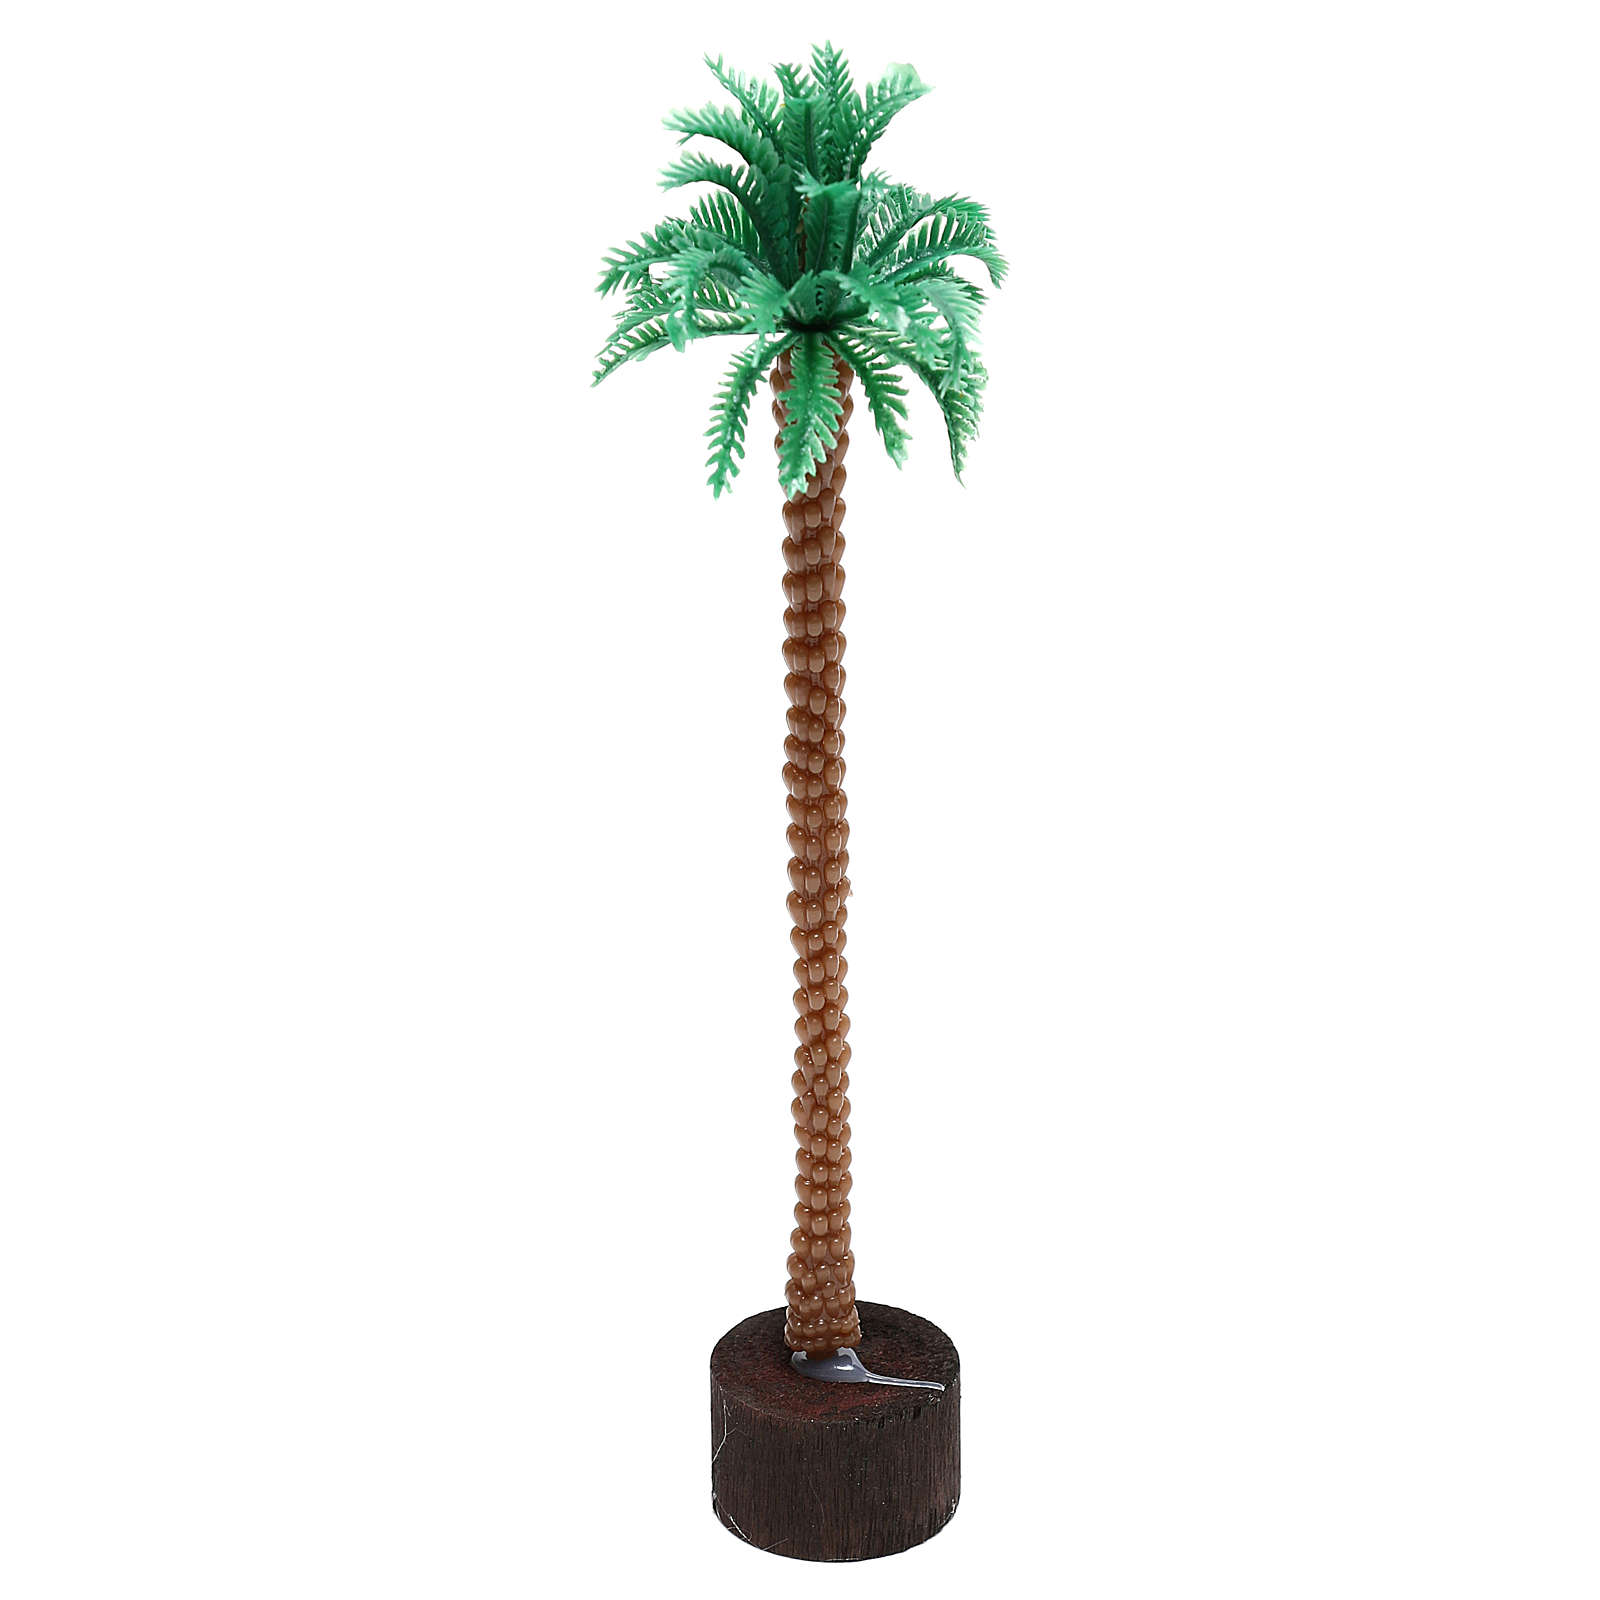 Plug-in palm tree for Nativity scene, 14 cm 4